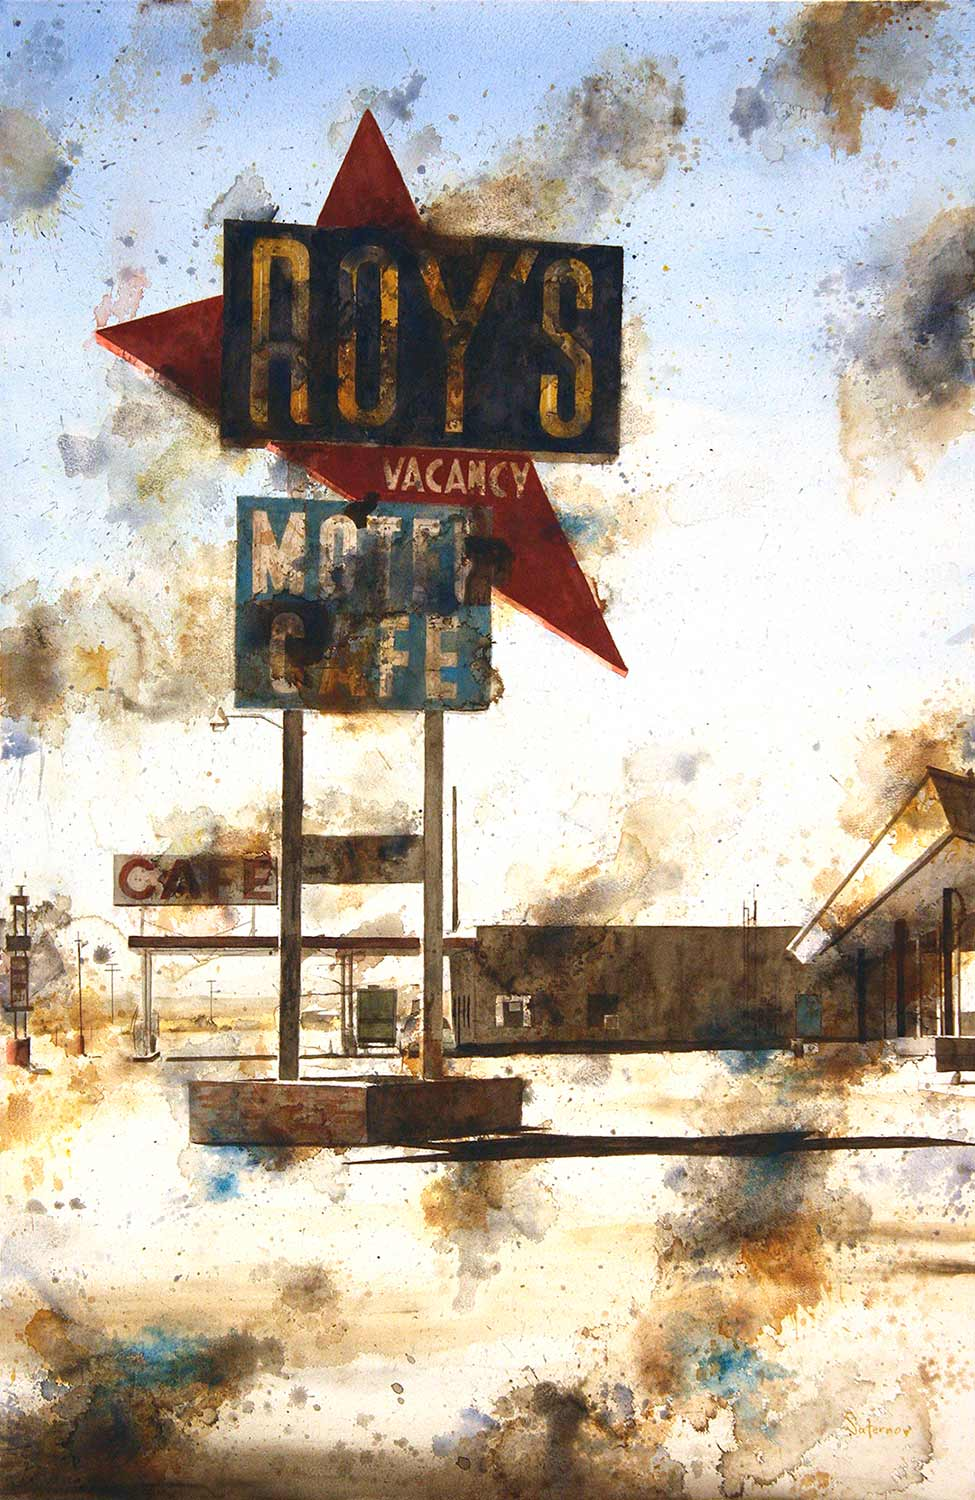 Roy's Motel, Route 66